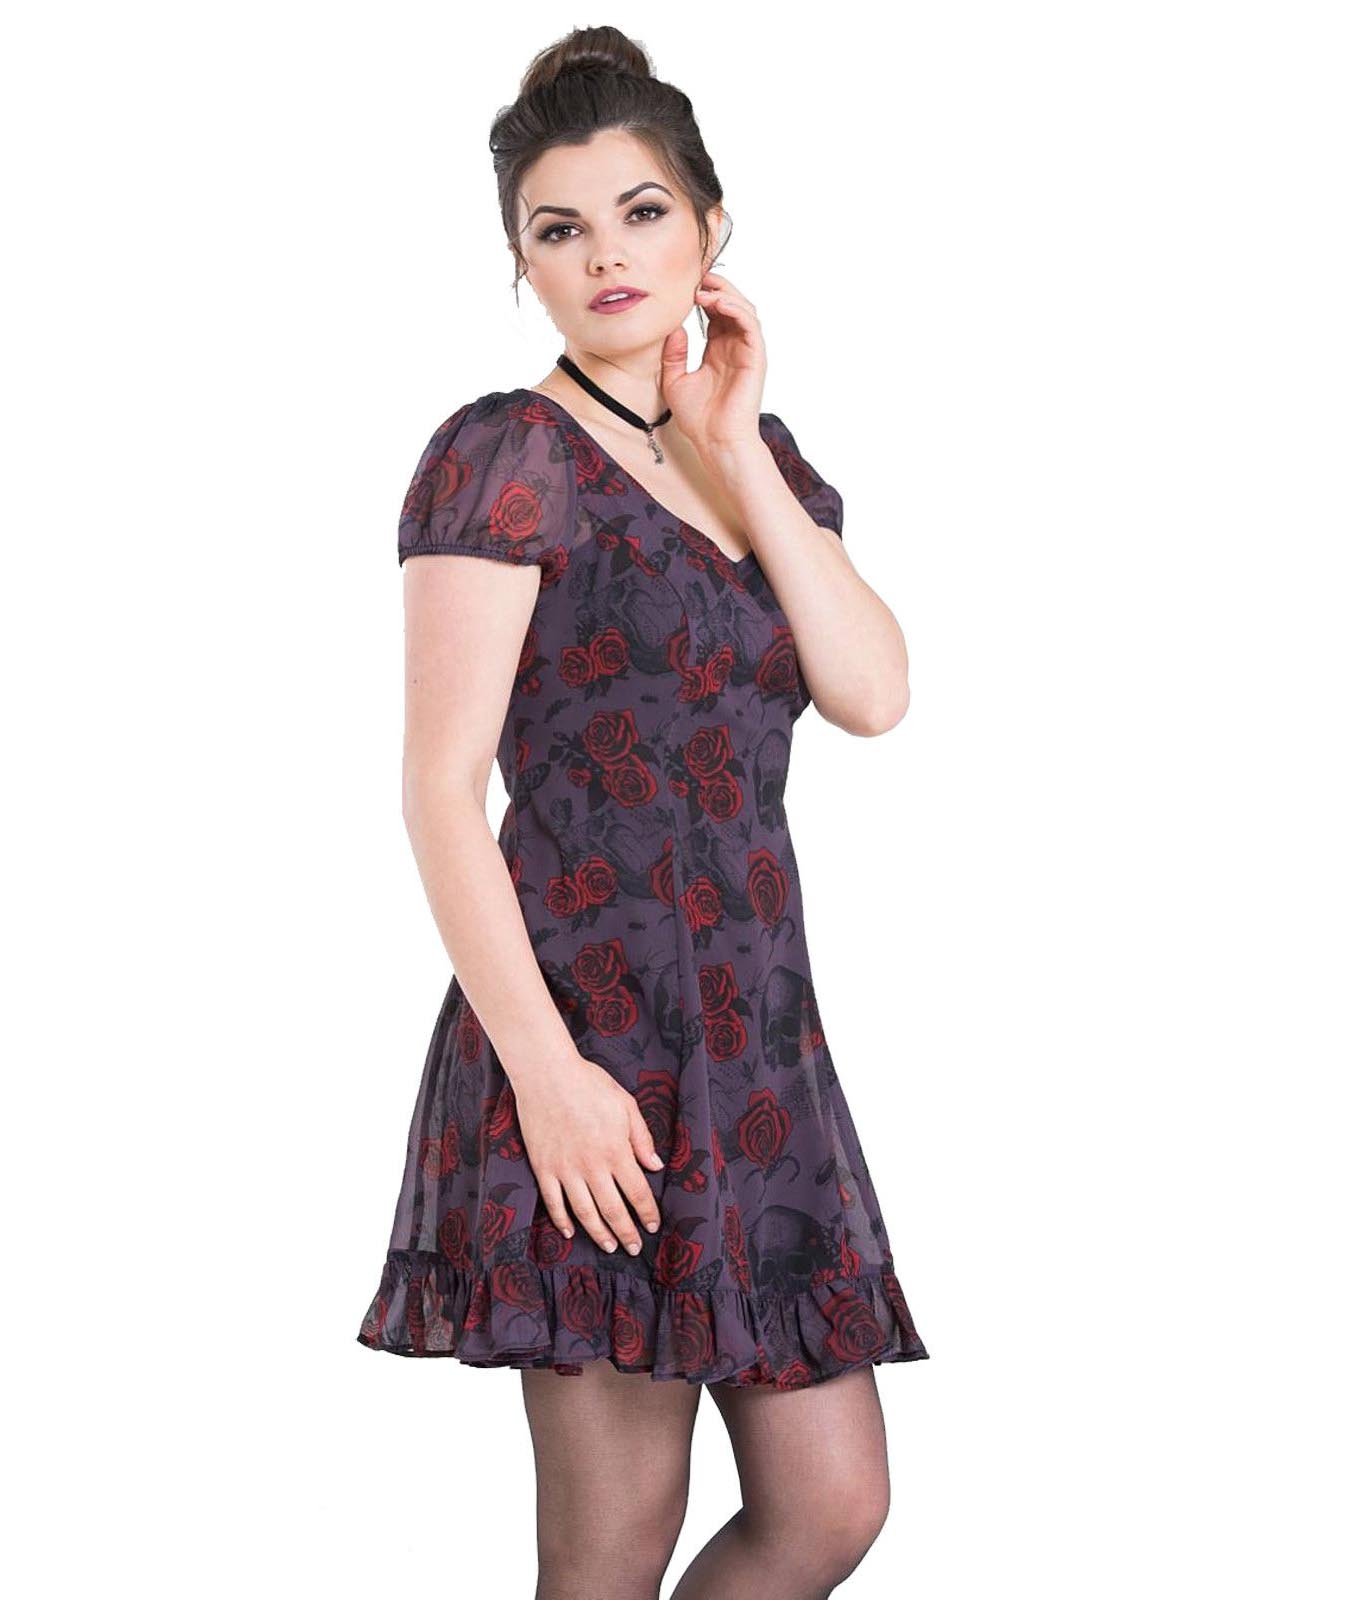 Hell-Bunny-Goth-Floaty-Mini-Dress-BUGS-amp-ROSES-Skulls-Butterfly-Purple-All-Sizes thumbnail 9